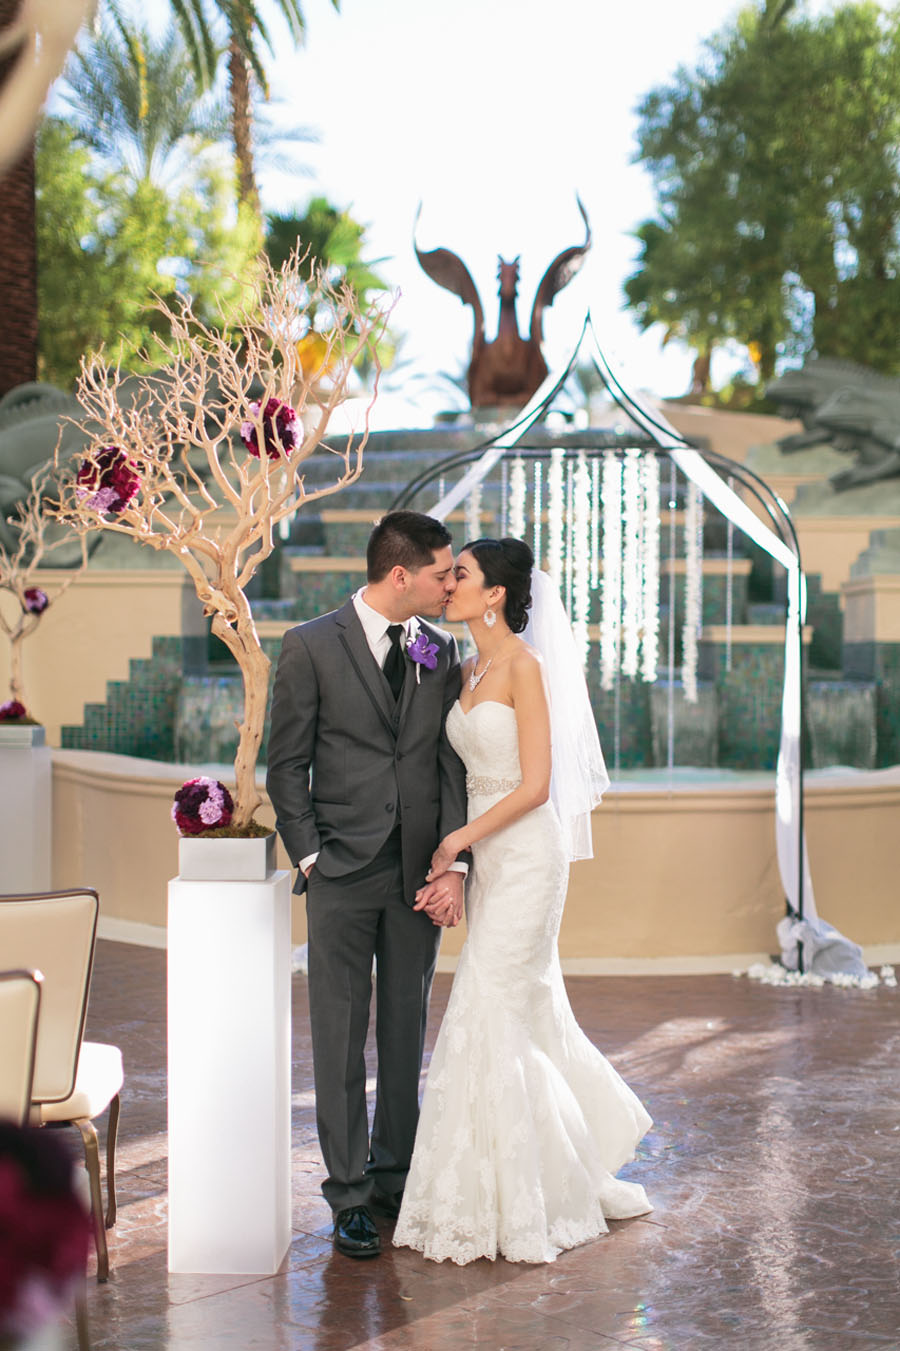 Katherine & Jared - Wedding at the Four Seasons Las Vegas.      Las Vegas Wedding Planner  Andrea Eppolito .  Photography by  Meg Ruth .  Floral and Decor by  Naakiti Floral .